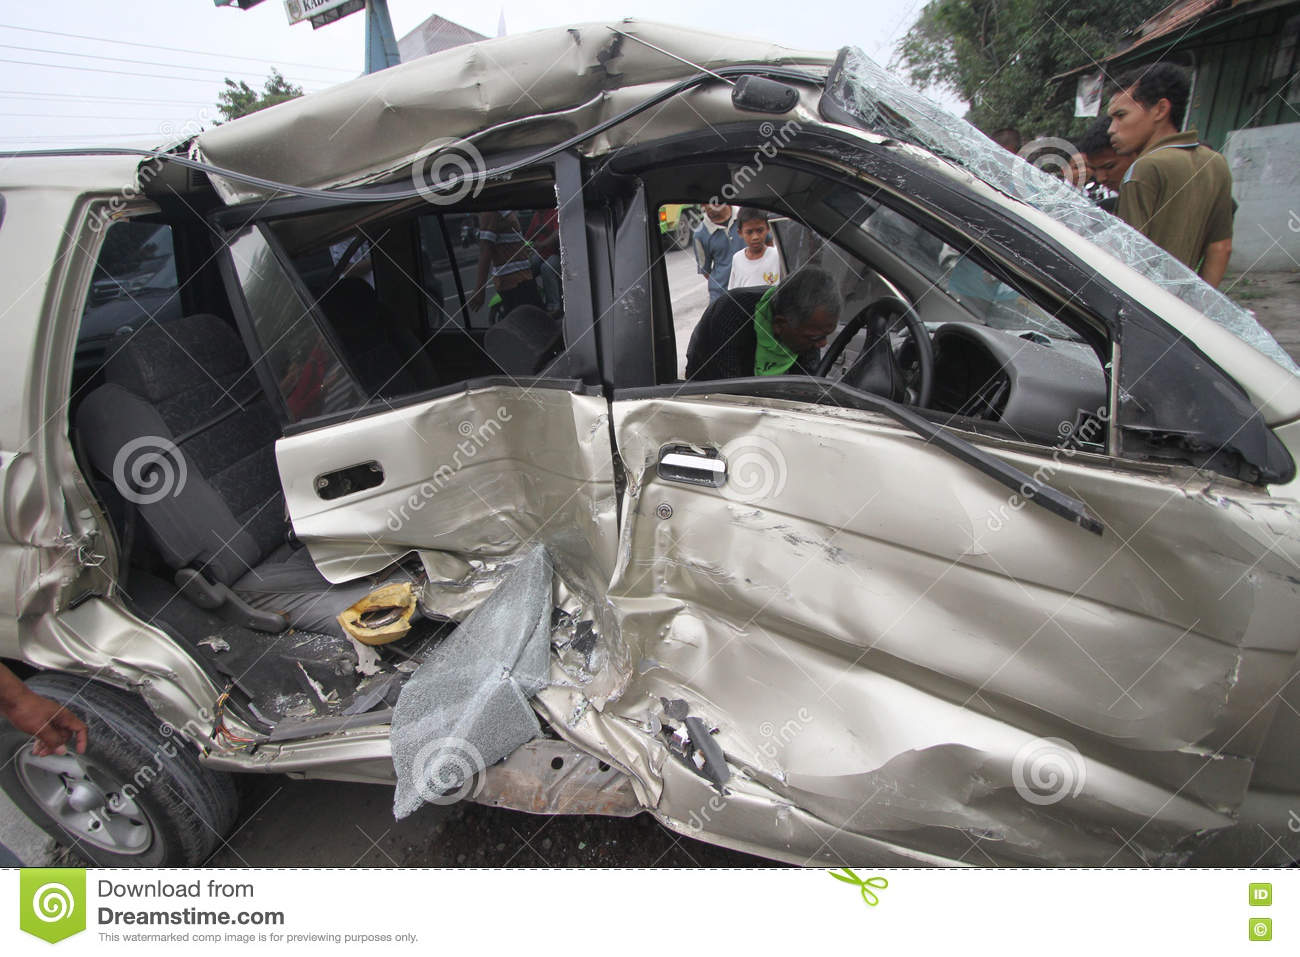 Traffic accidents due to driver negligence